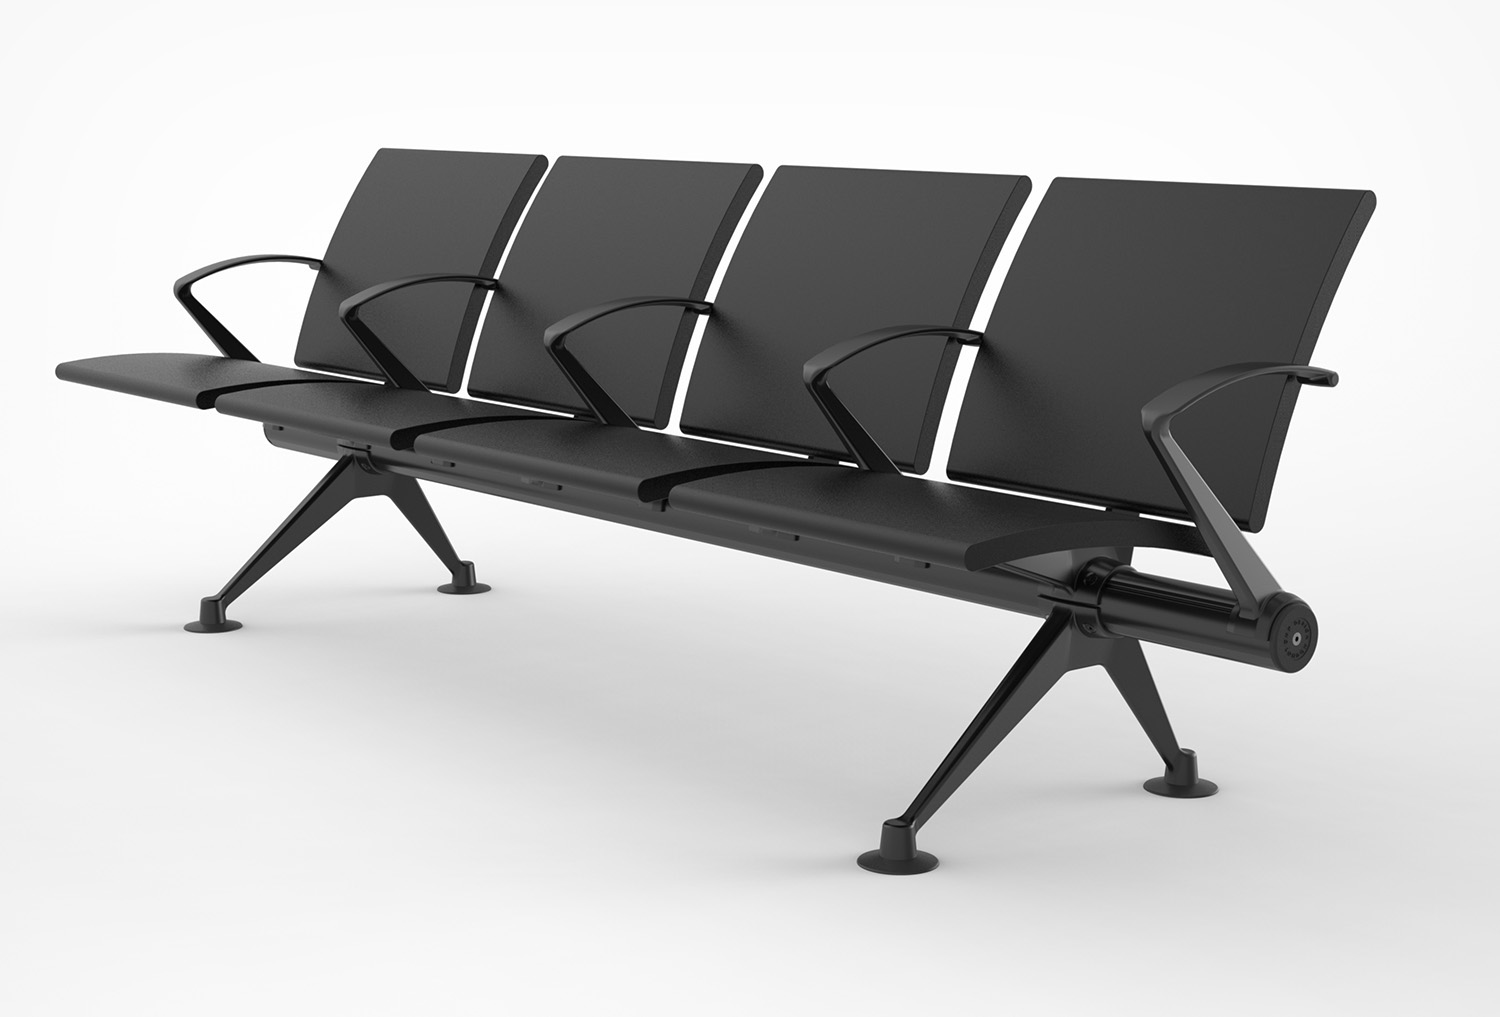 Airport Terminal Seating Systems Omk Design Ltd